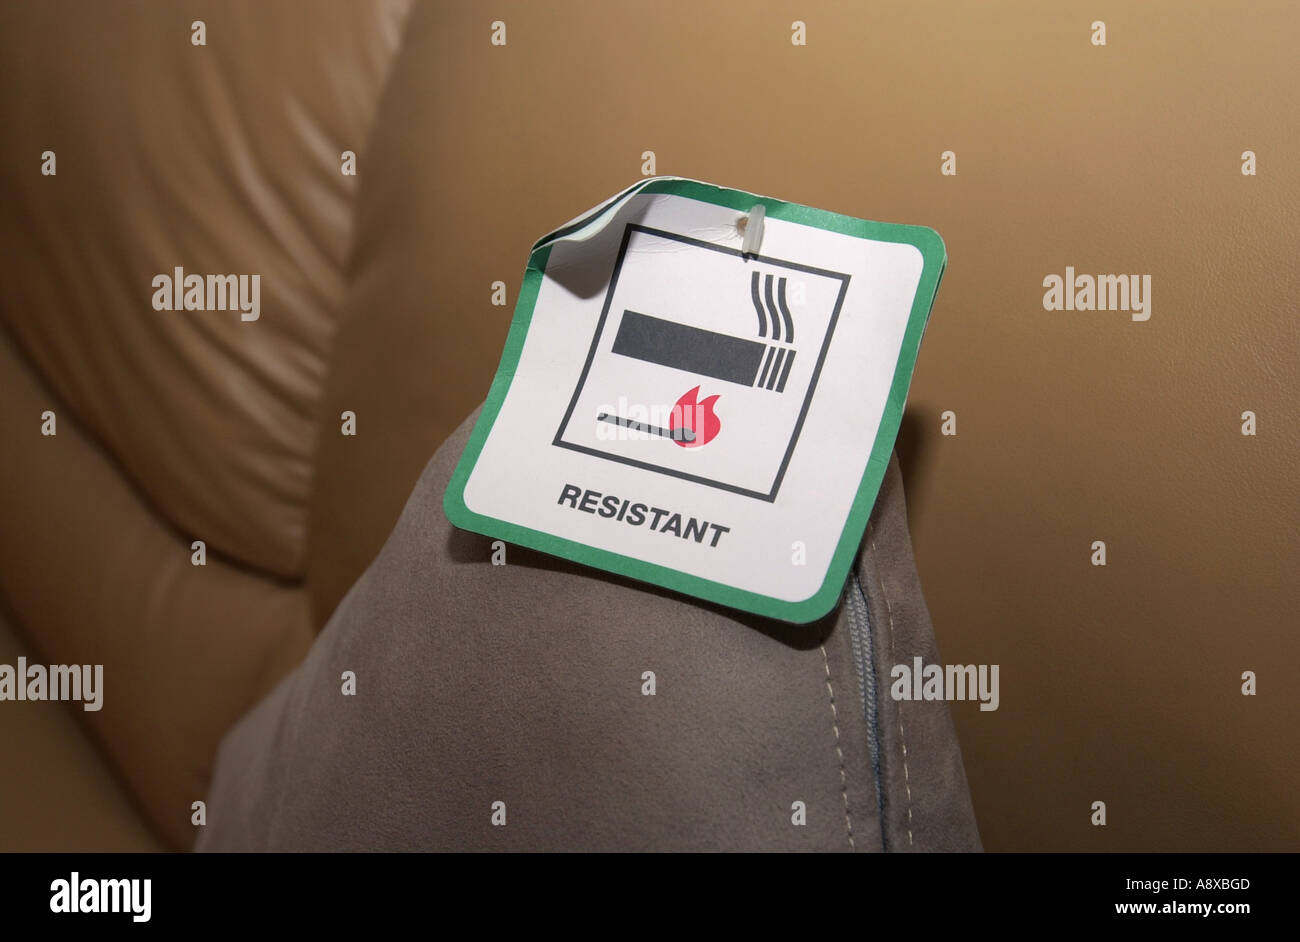 furniture shows the fire resistant label uk stock photo 6965836 alamy